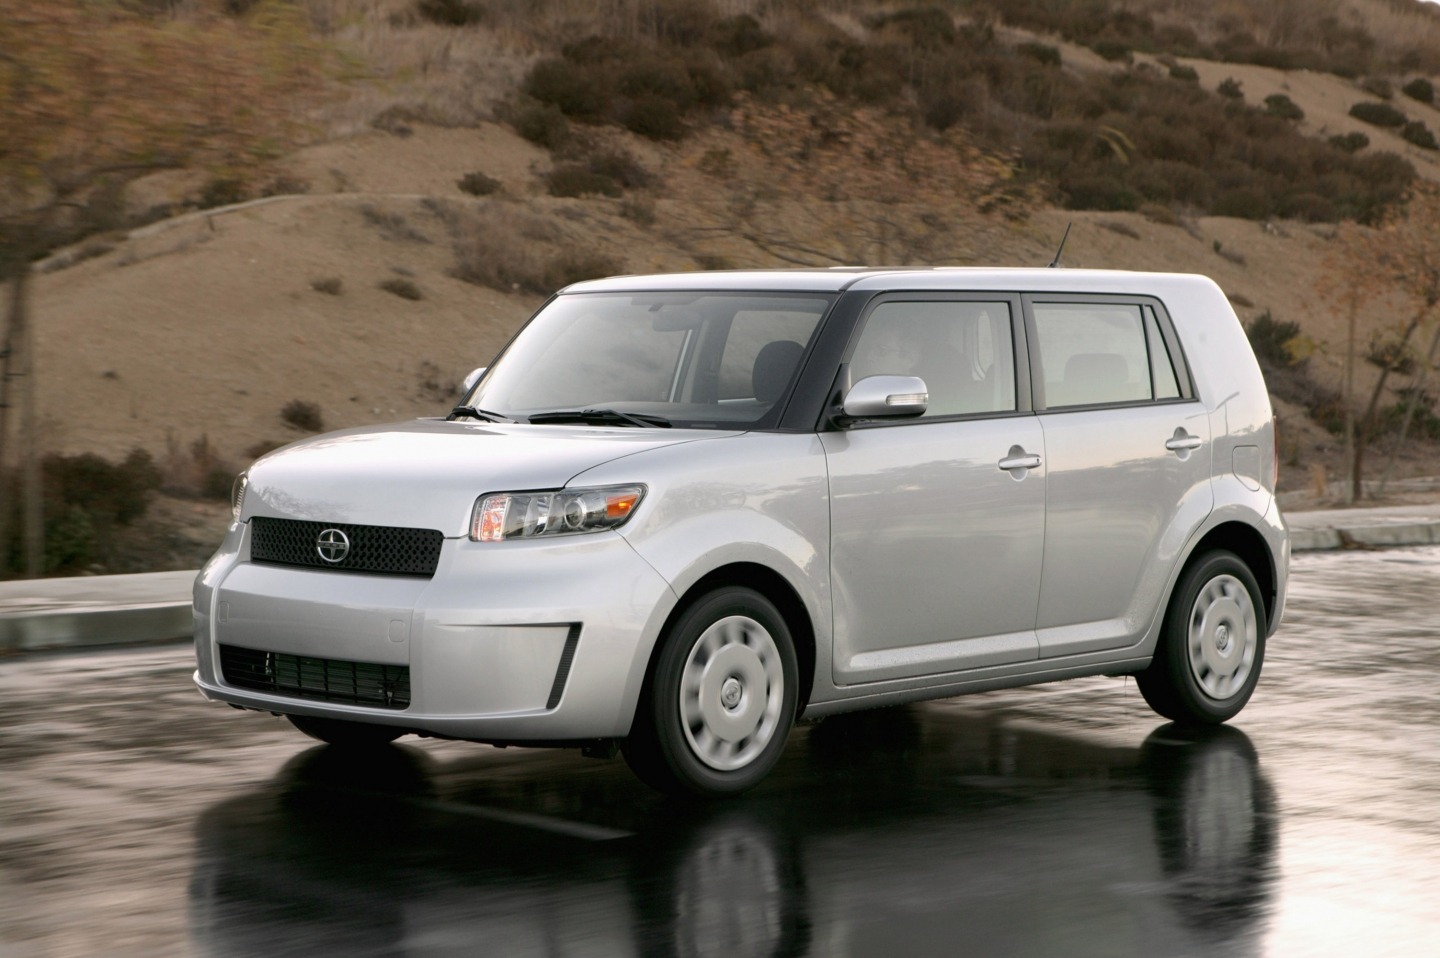 2009 Scion XB | Top Speed. »